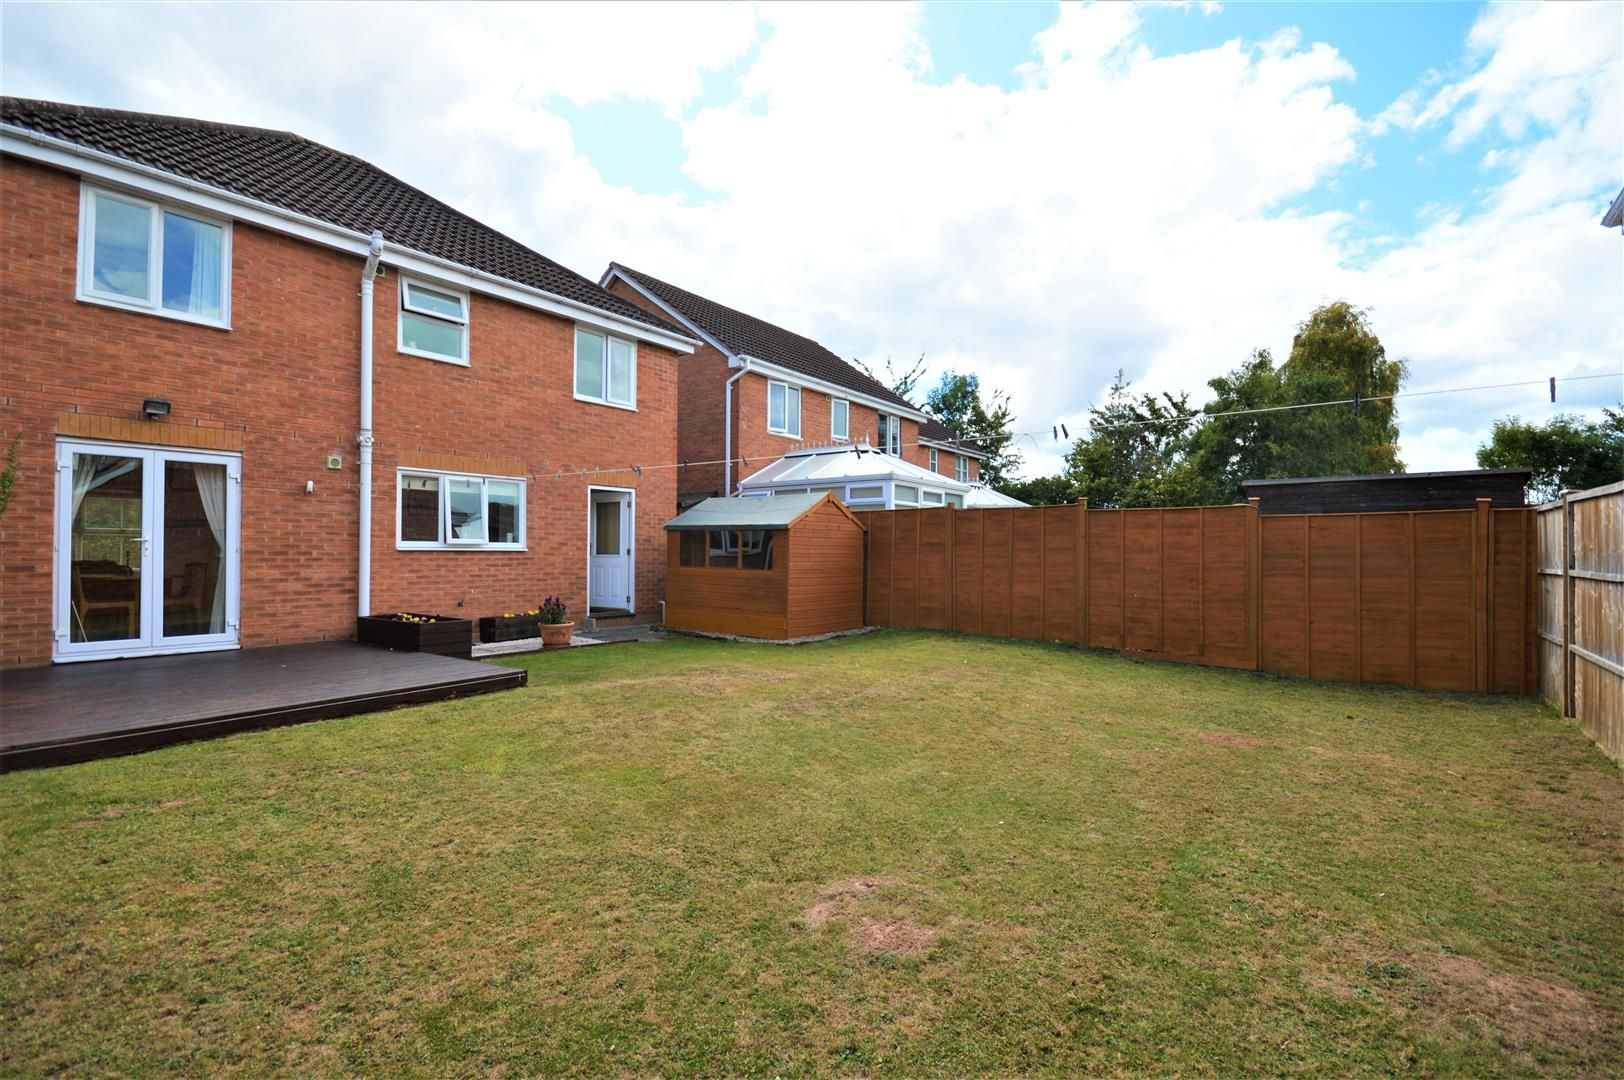 4 bed detached for sale in Belmont  - Property Image 13